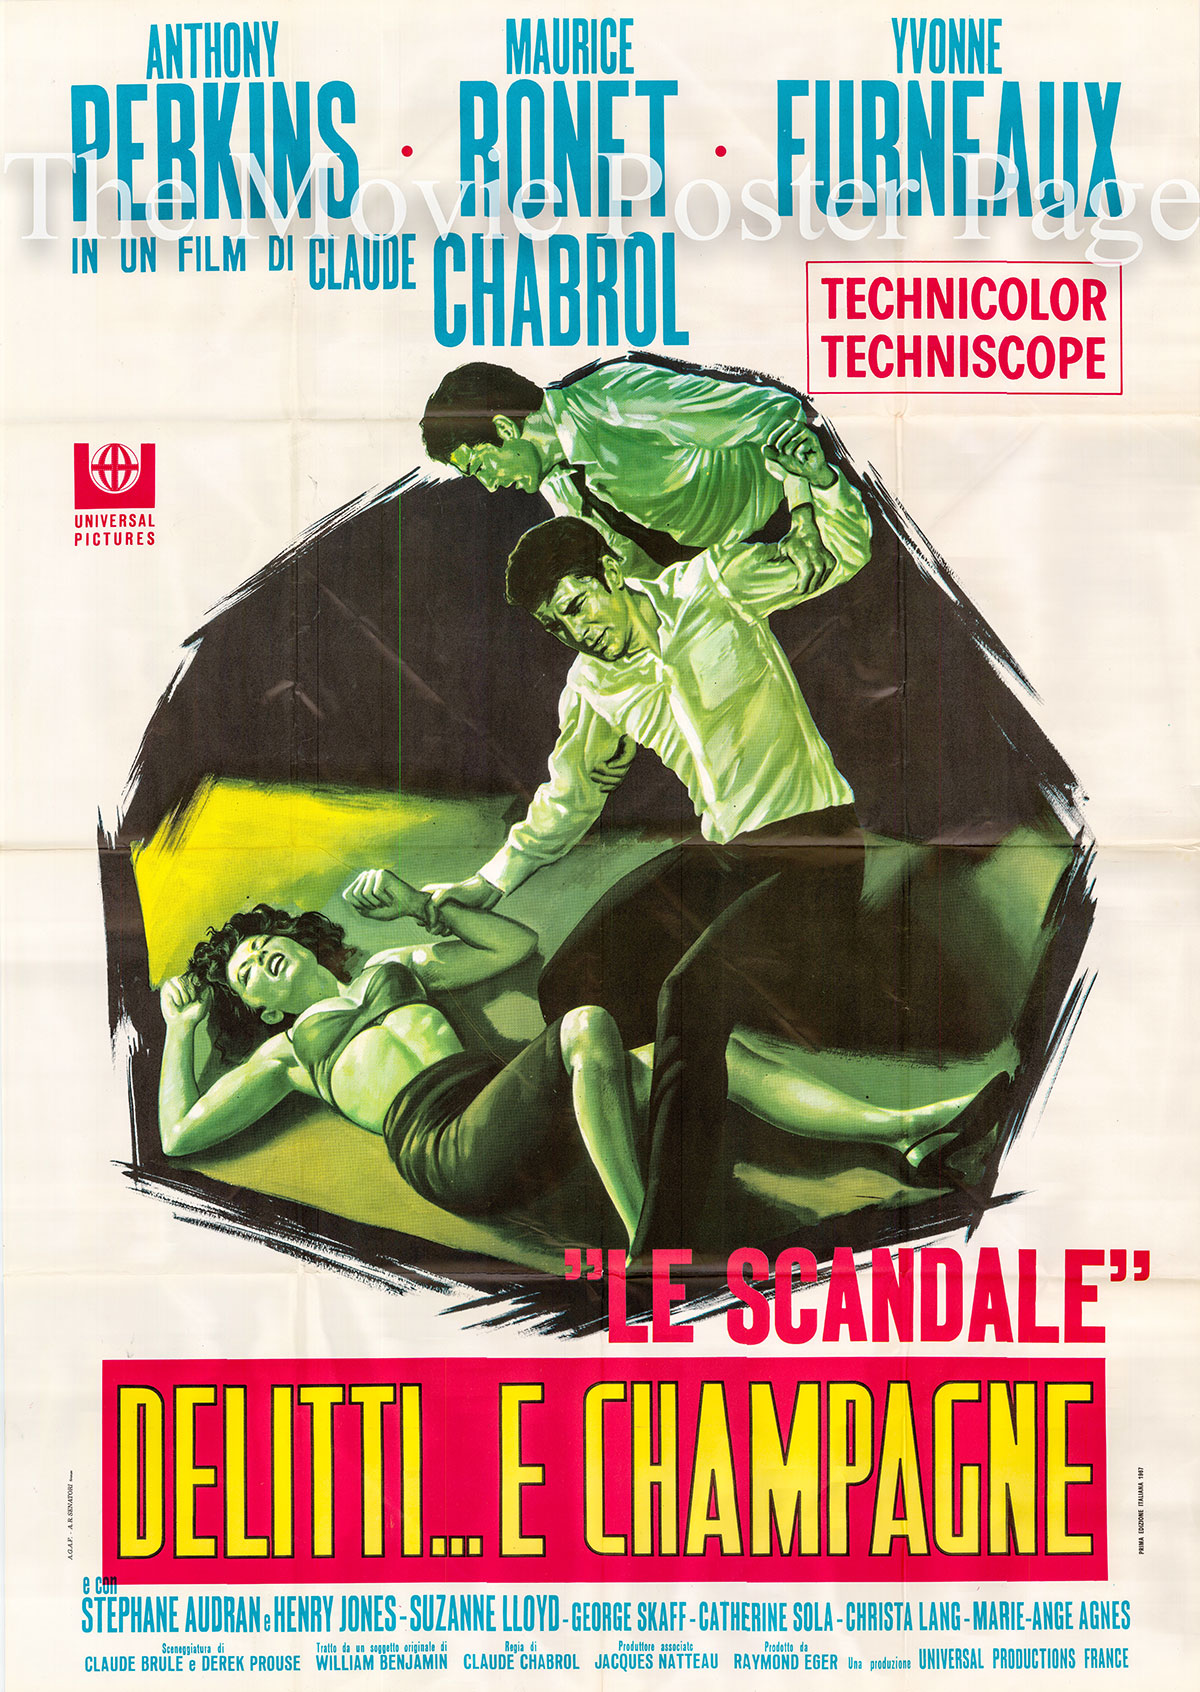 Pictured is an Italian two-sheet poster for the 1966 Claude Chabrol film <i>The Champagne Murders</i> starring Anthony Perkins.